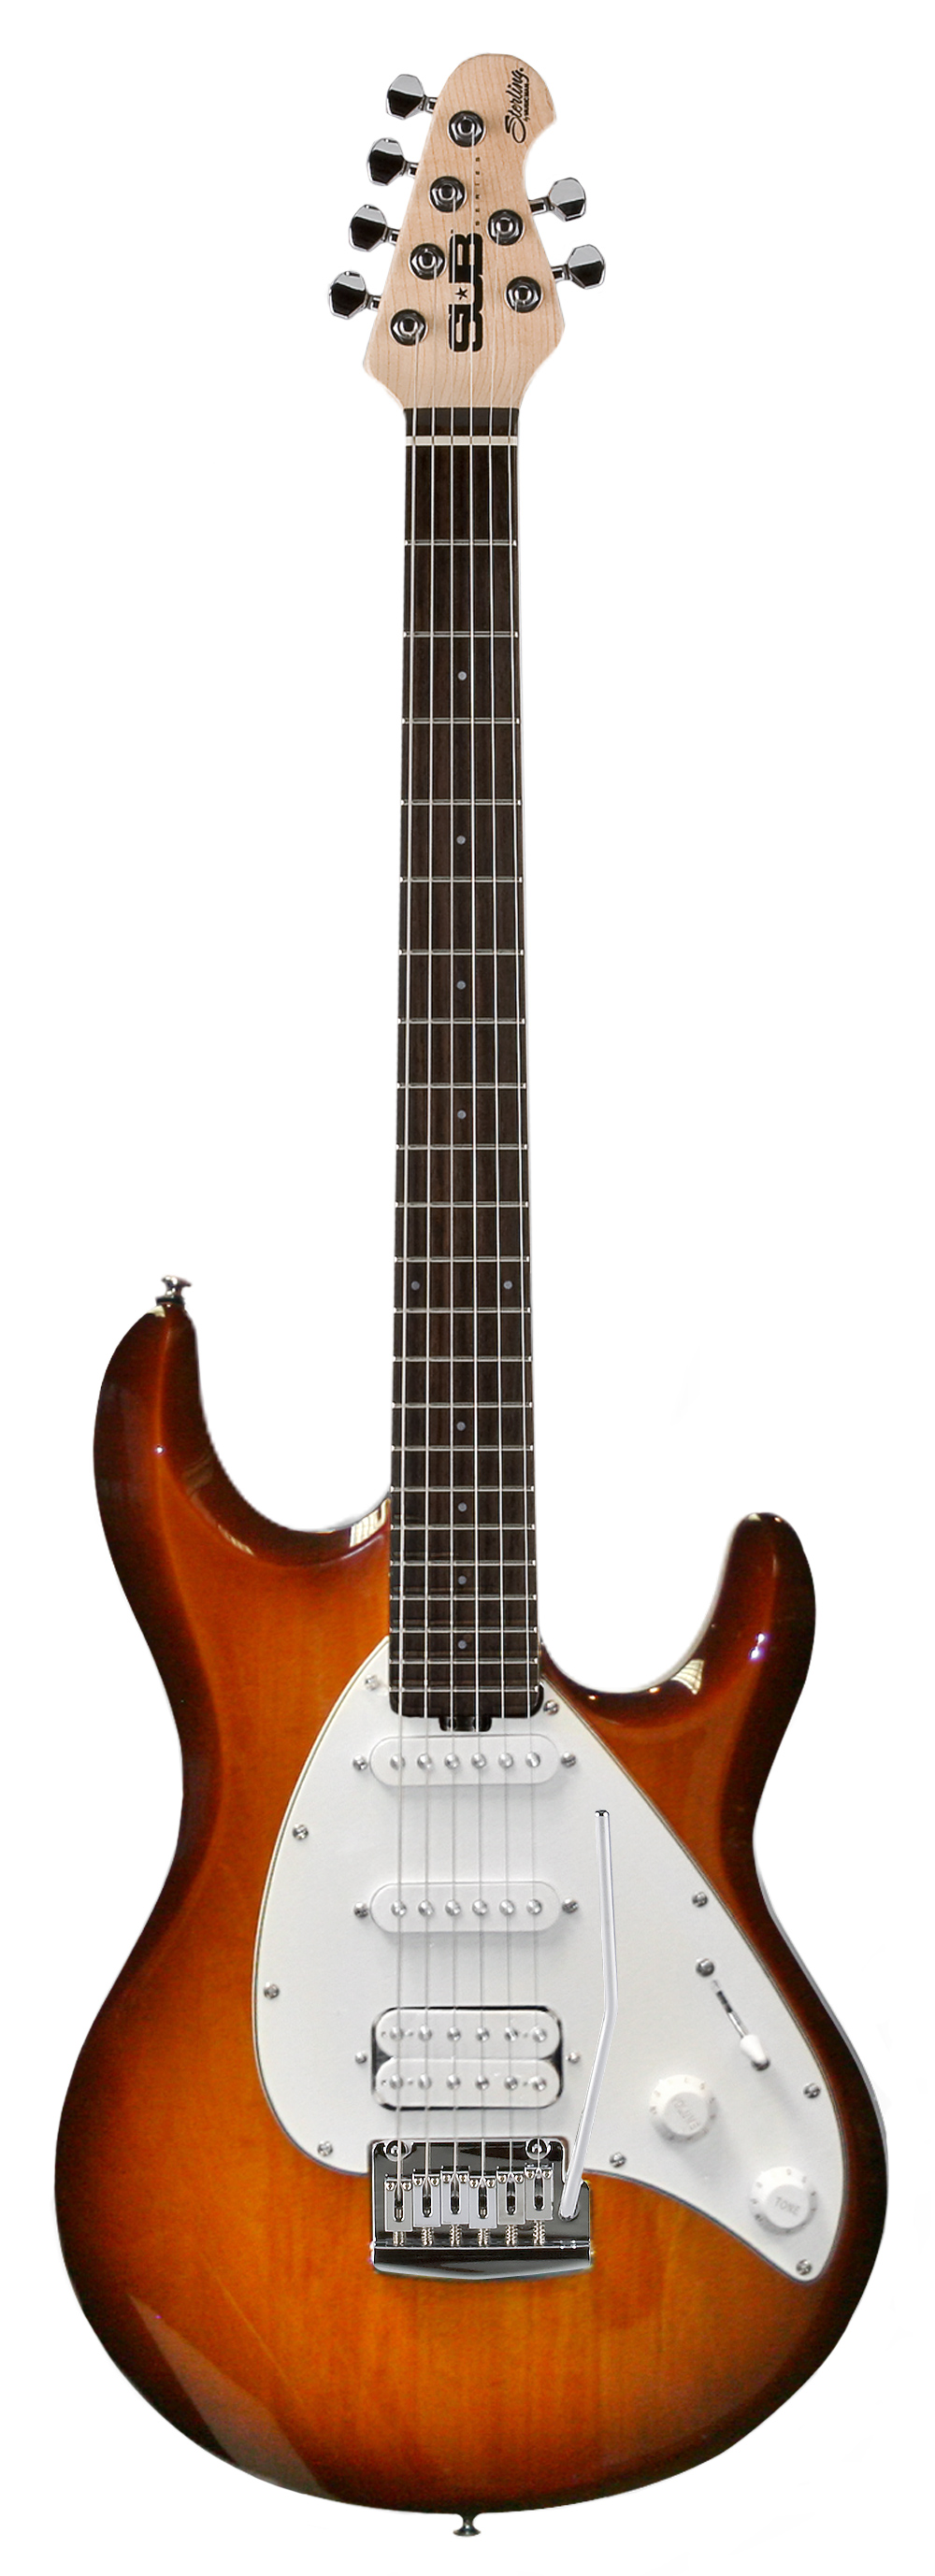 sterling by music man sub silo3 electric guitar in tobac. Black Bedroom Furniture Sets. Home Design Ideas